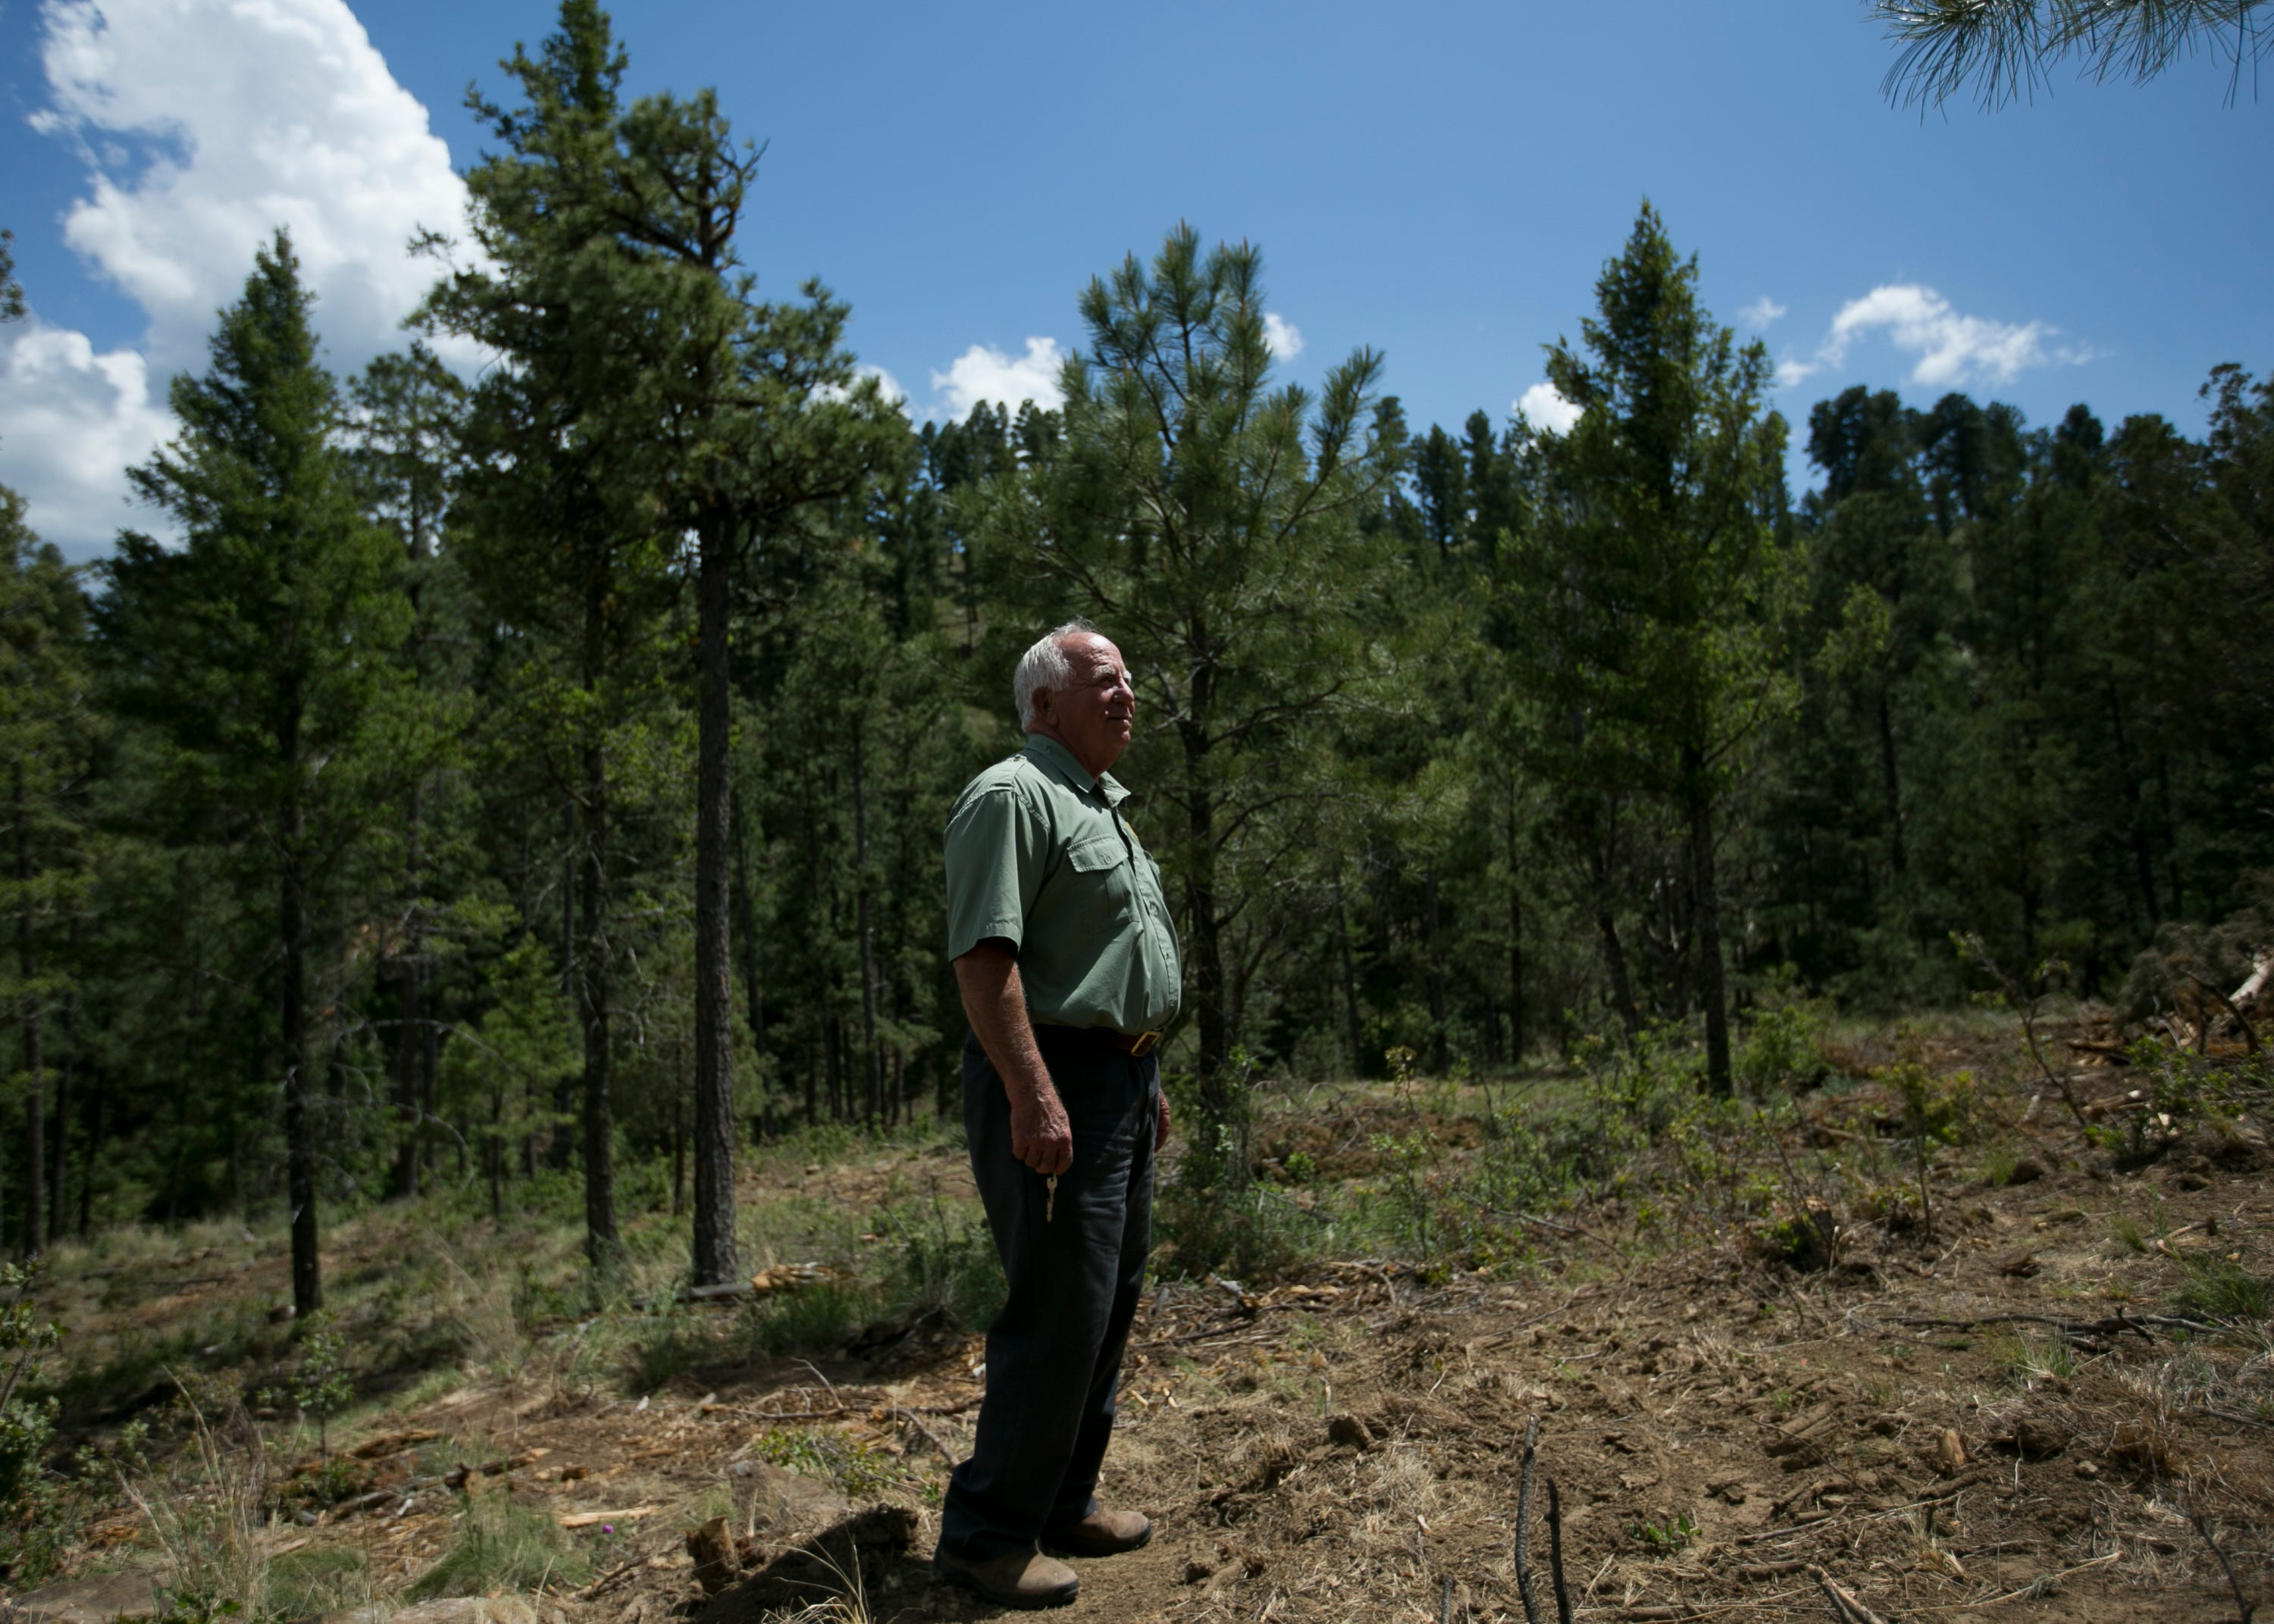 Forestry Director Dick Cooke says the Ruidoso wildfire ordinance is probably the village's best defense.